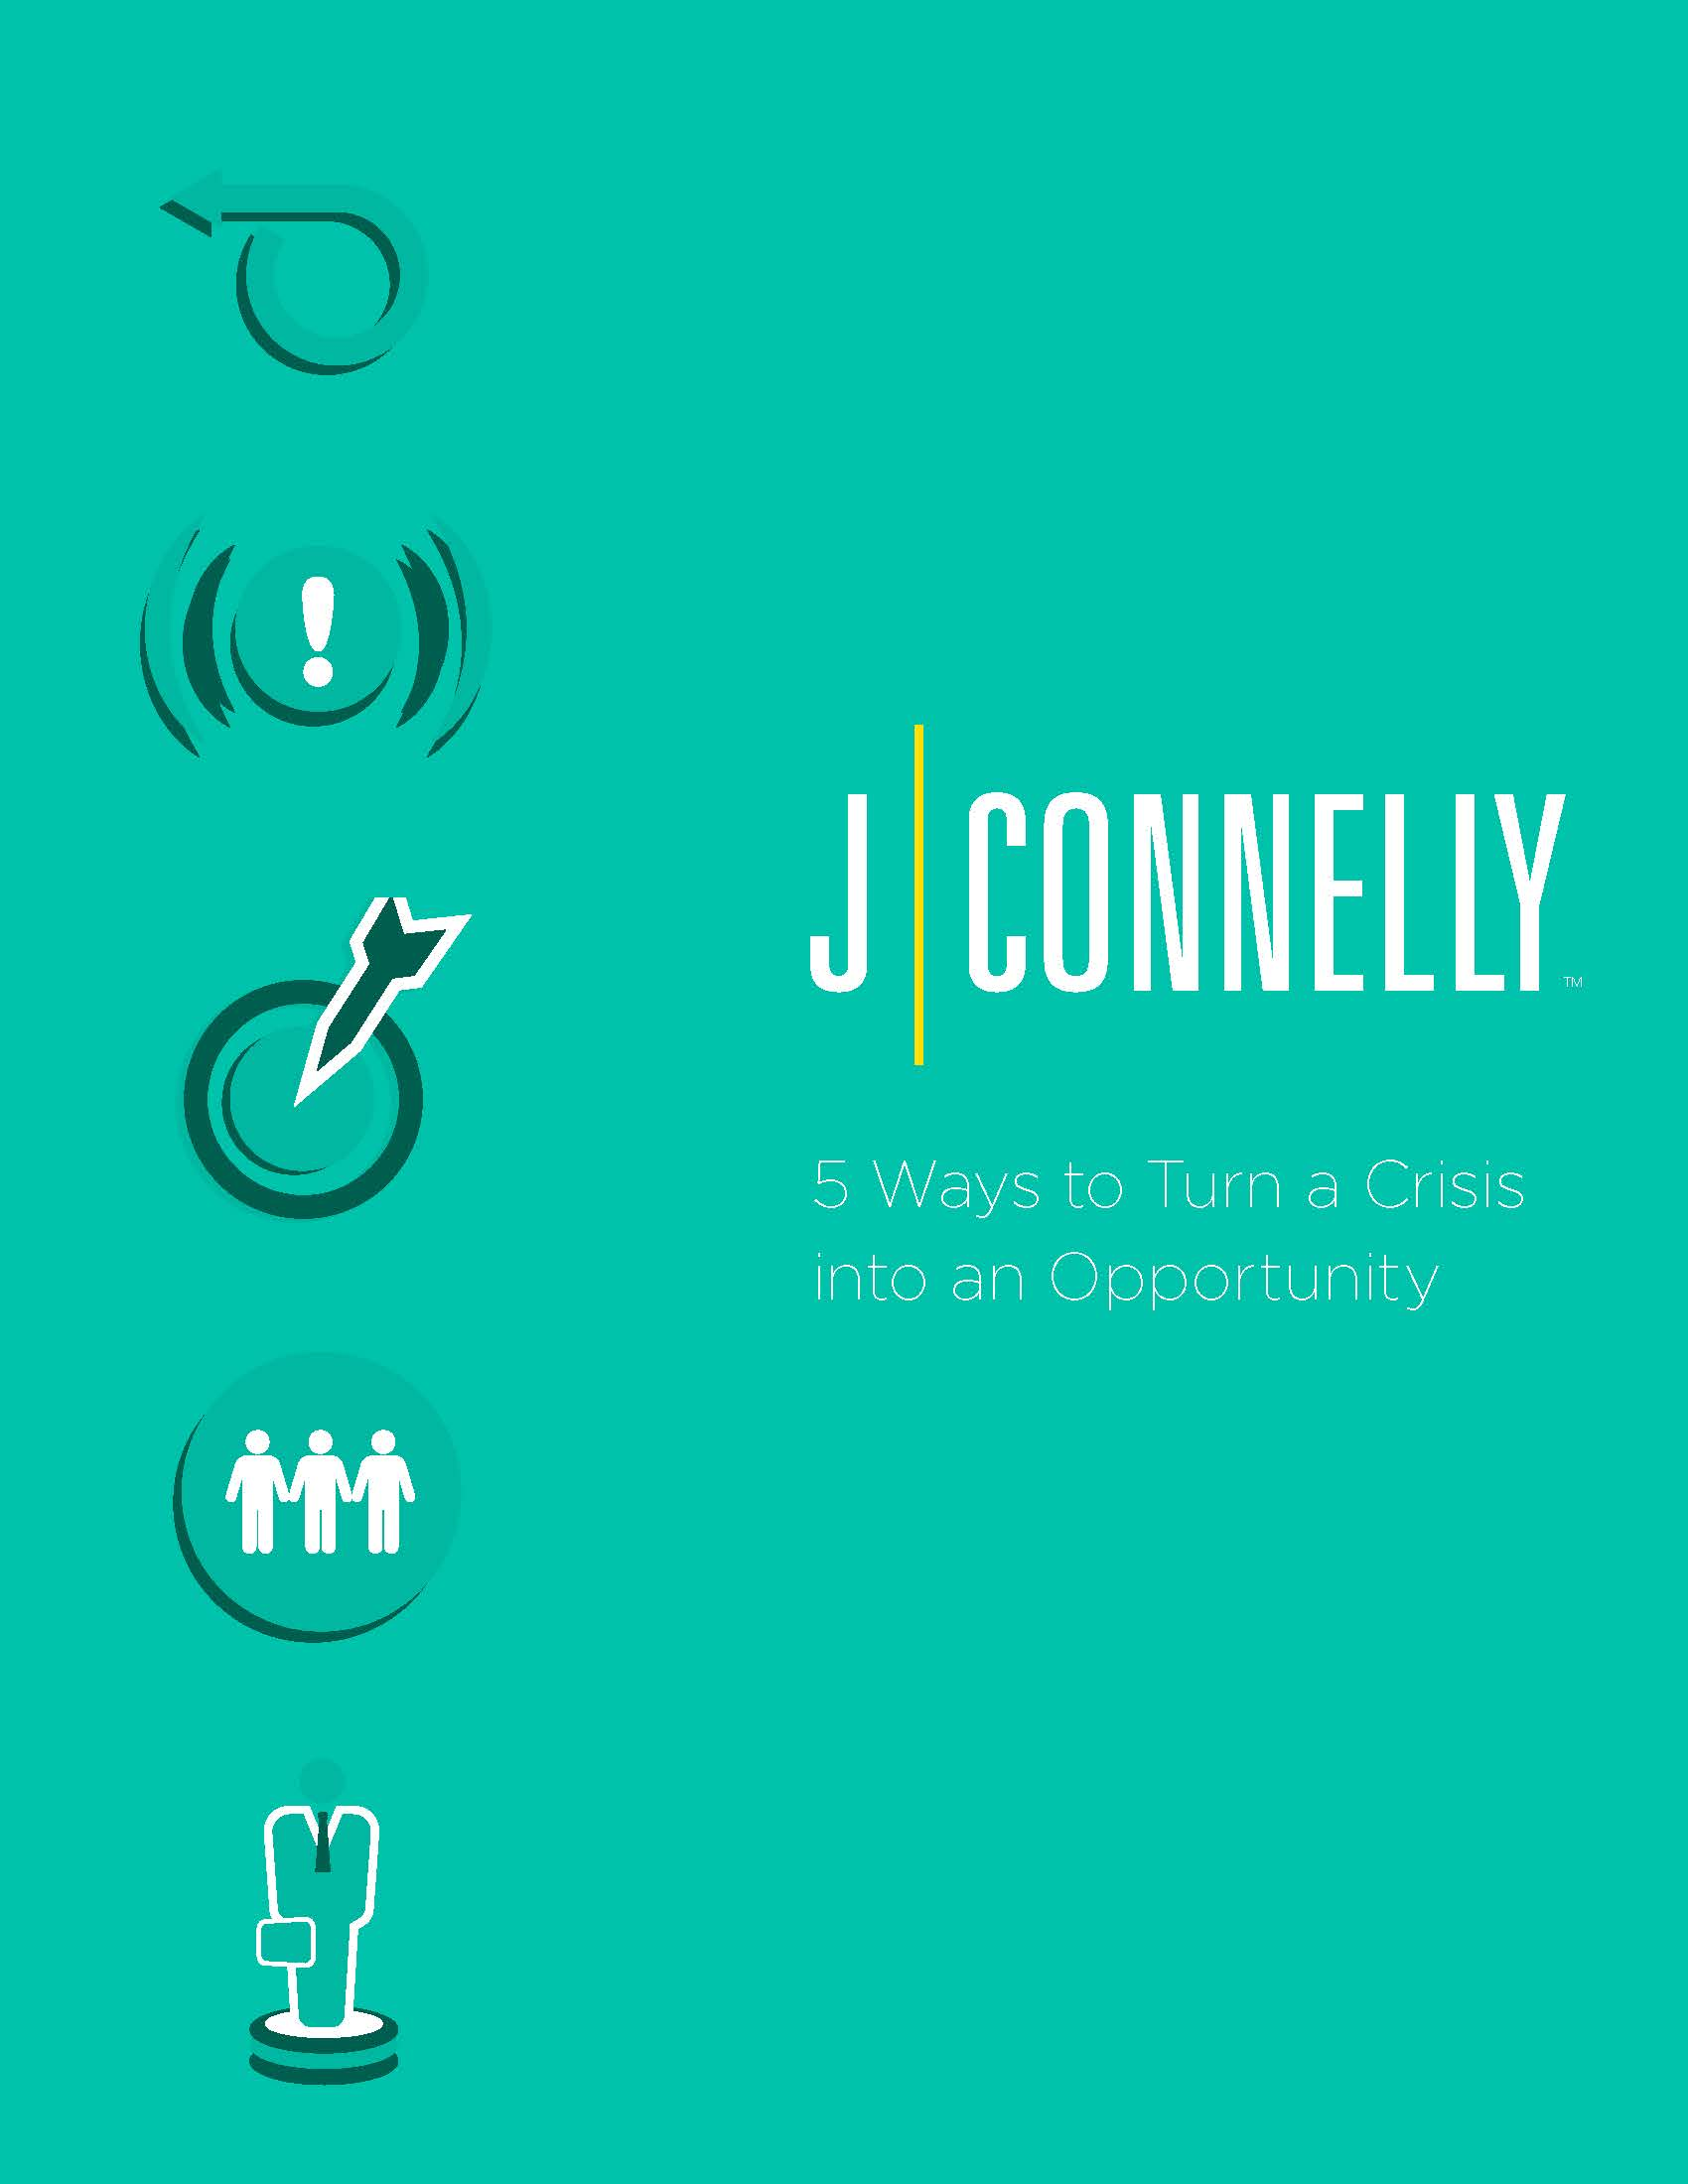 JConnelly_Turn Crisis Into Opportunity_Page_1